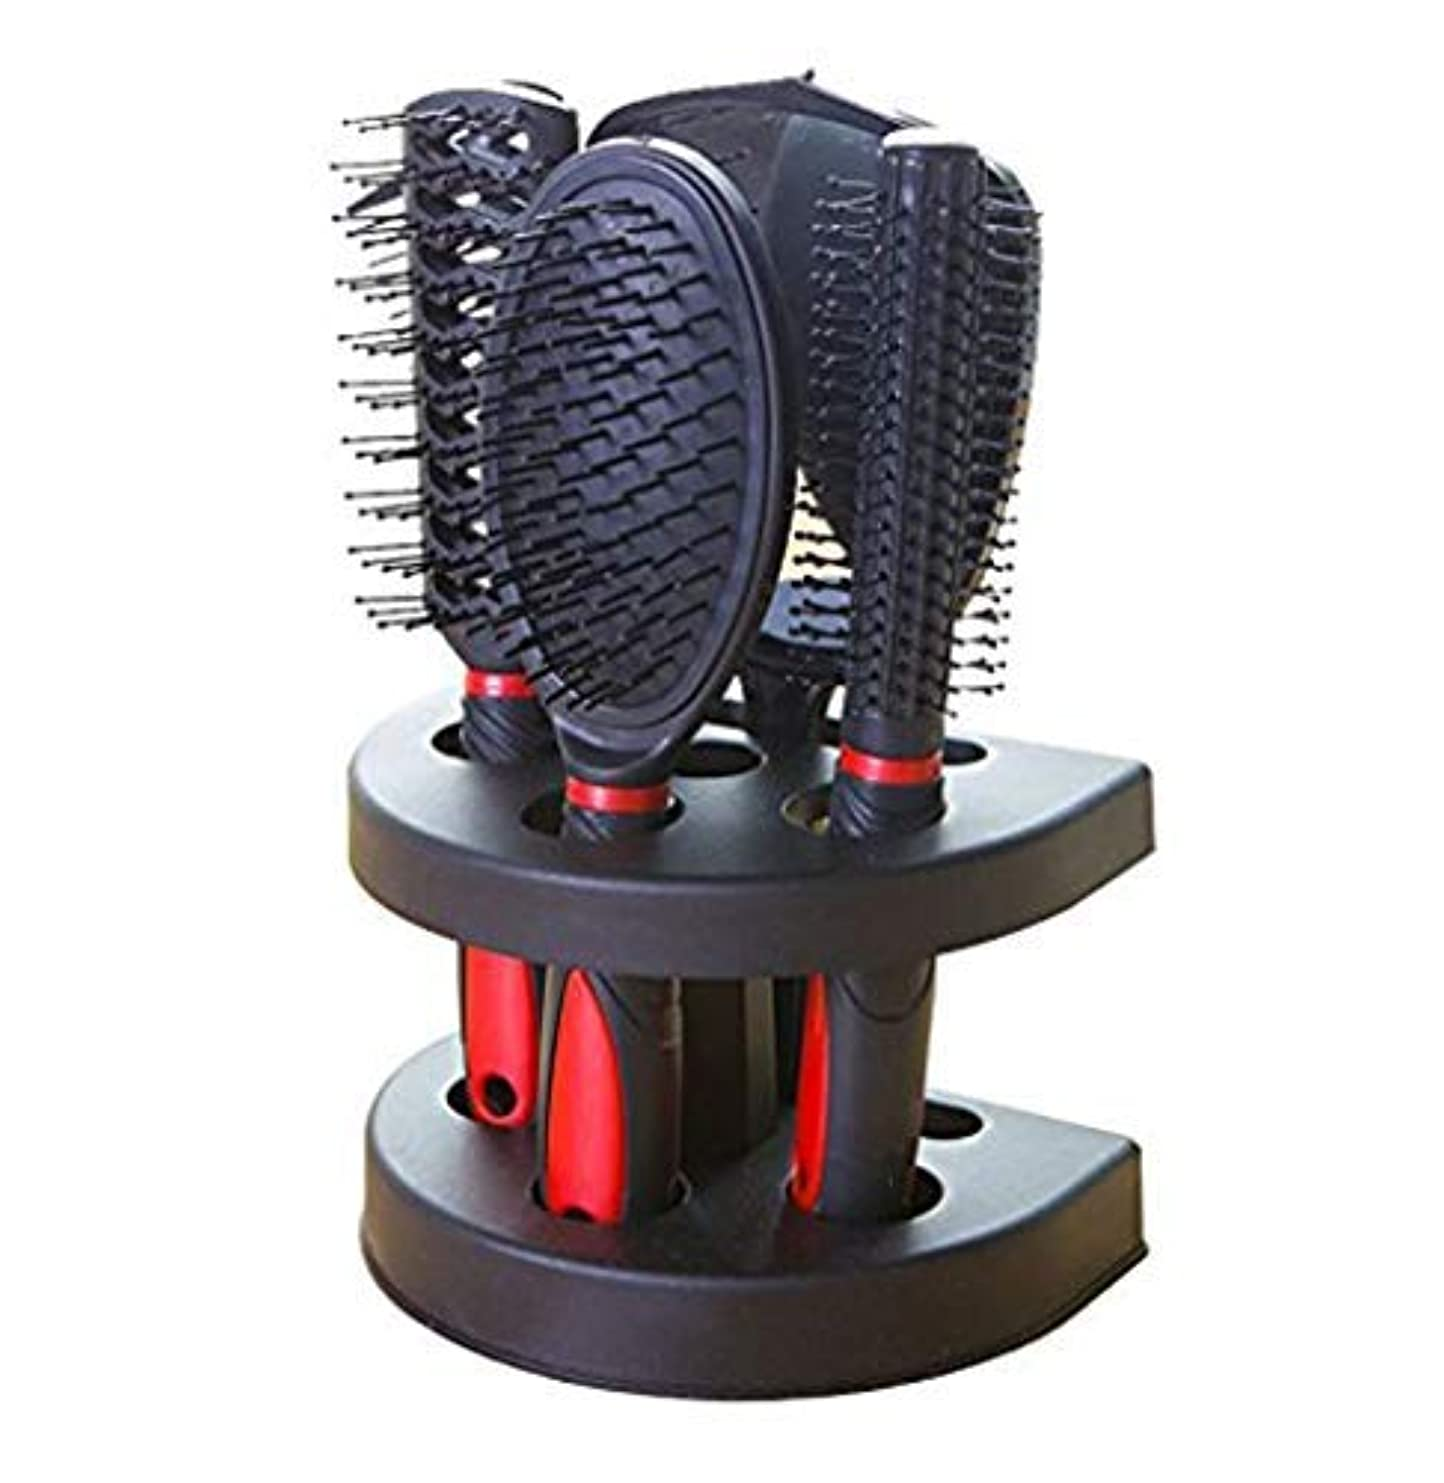 引き出すクランプ販売員Healthcom Hairs Combs Salon Hairdressing Styling Tool Hair Cutting Brushes Sets Dressing Comb Kits,Set of 5 [並行輸入品]